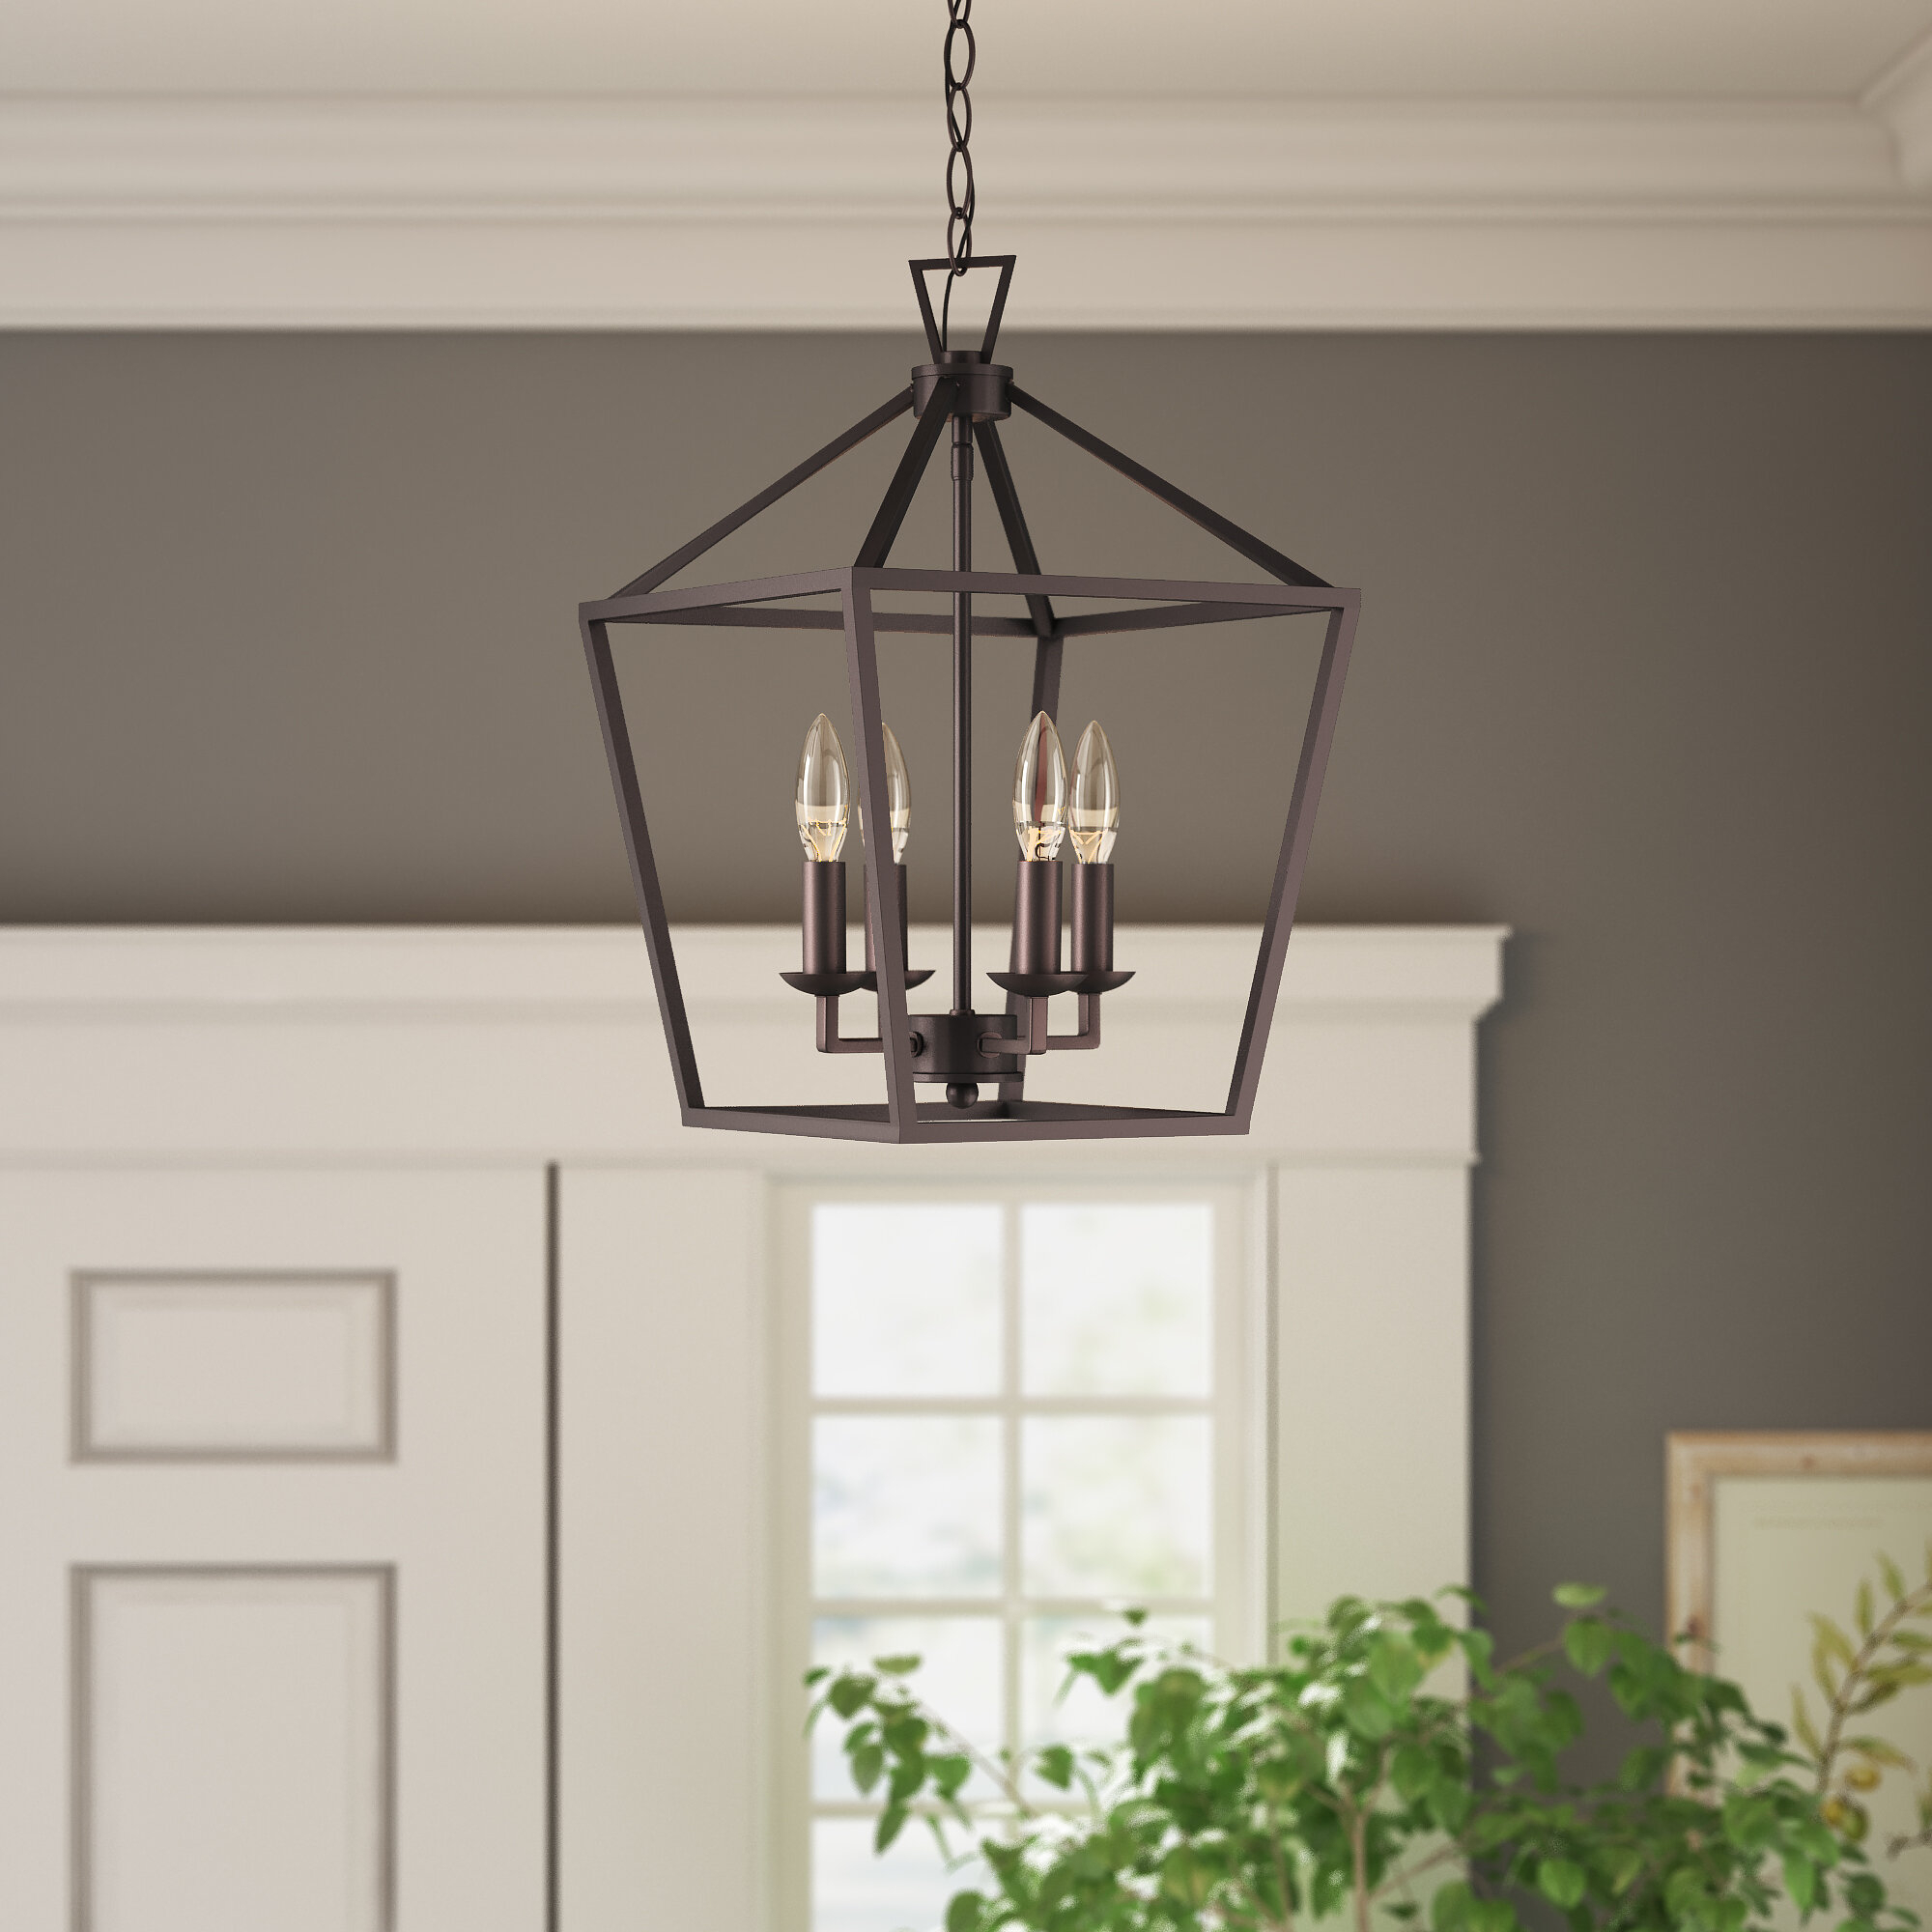 Farmhouse Pendant Lights | Birch Lane For Emaria 3 Light Single Drum Pendants (View 24 of 30)